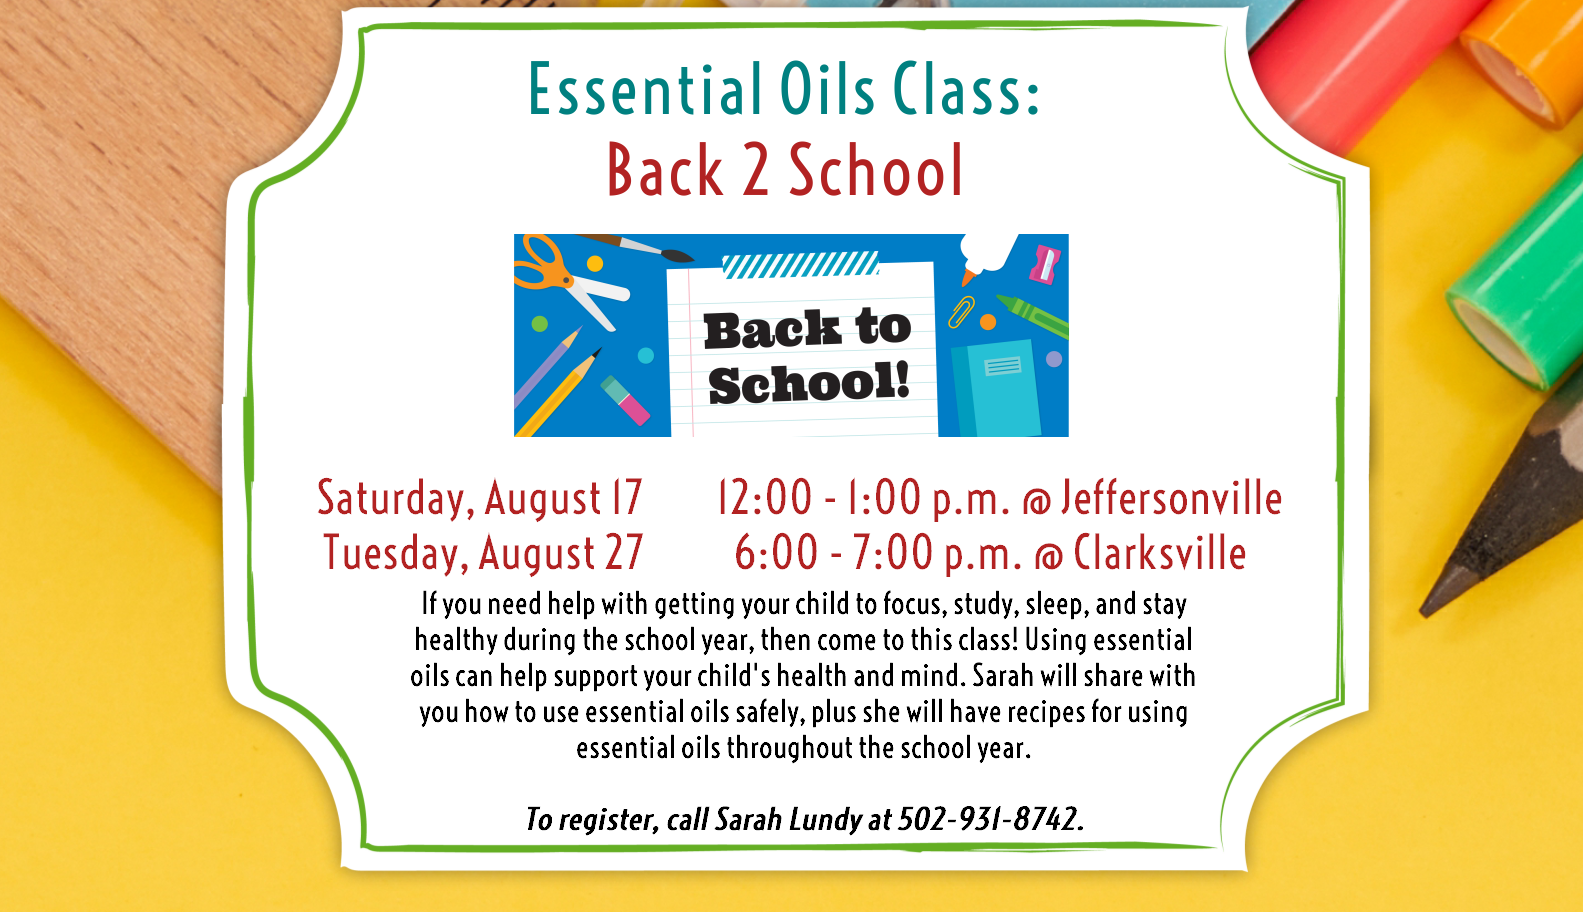 Flyer for the Essential Oils program on August 27th, 2019